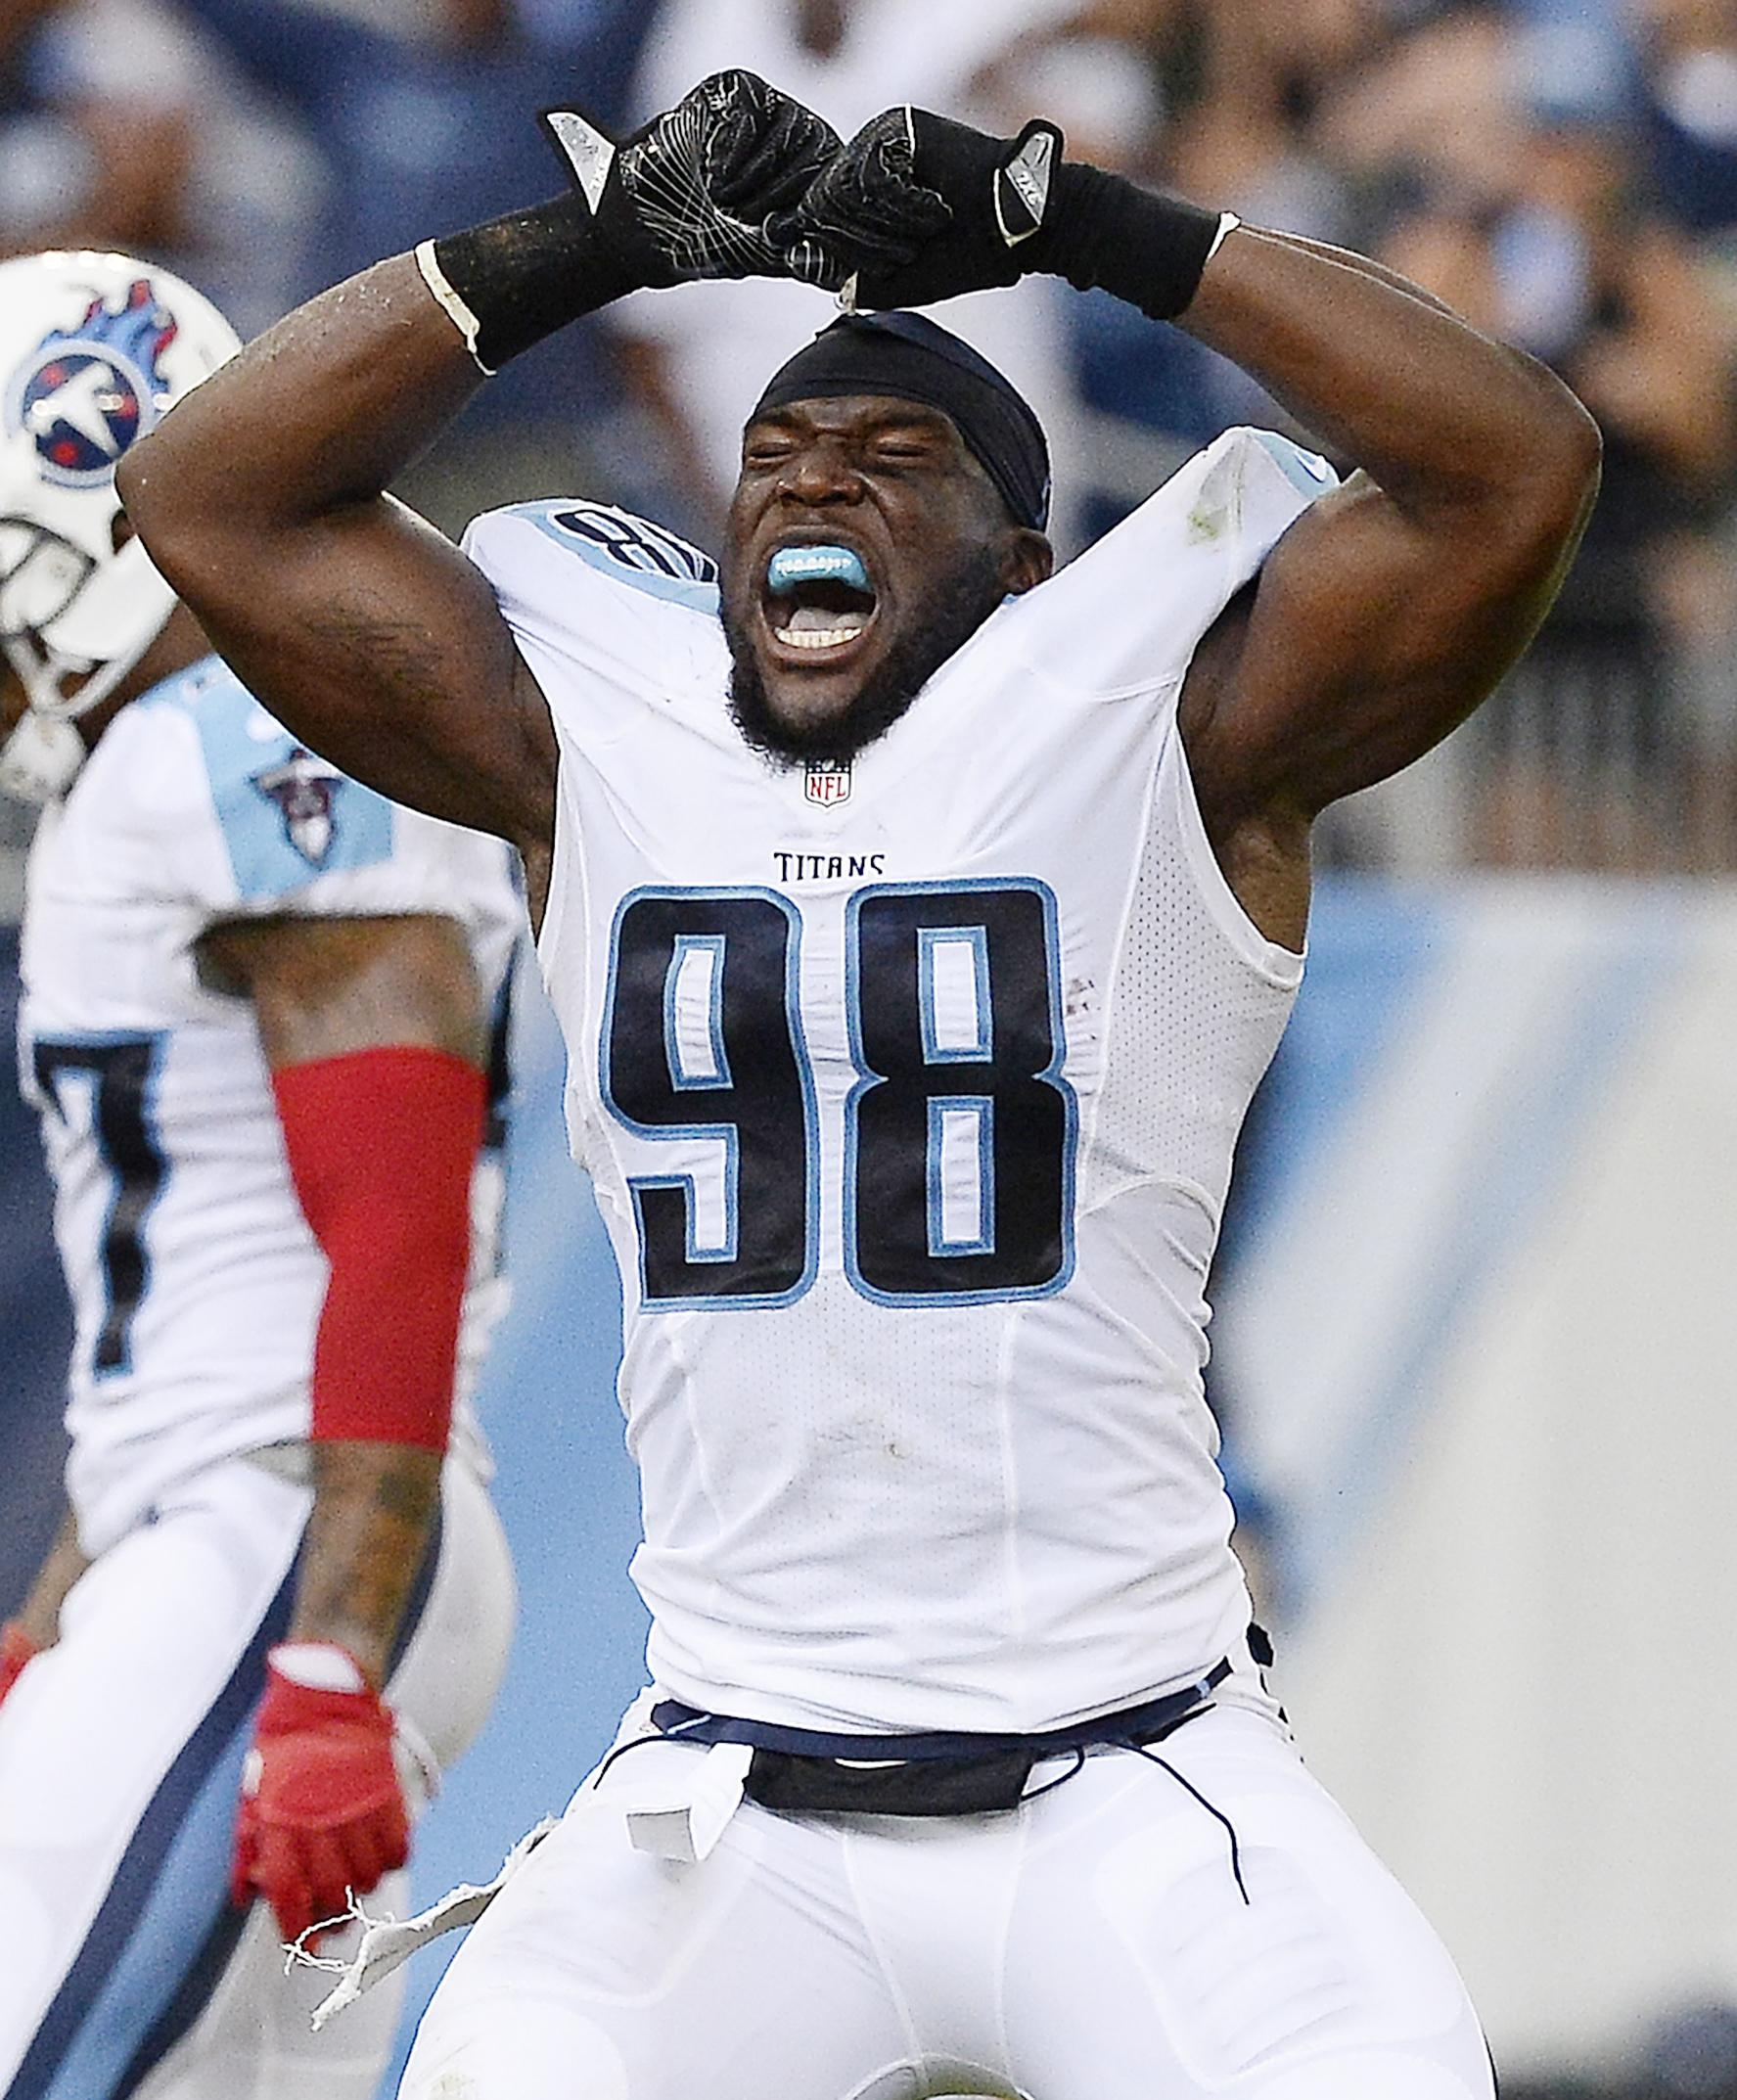 Titans_orakpo_football